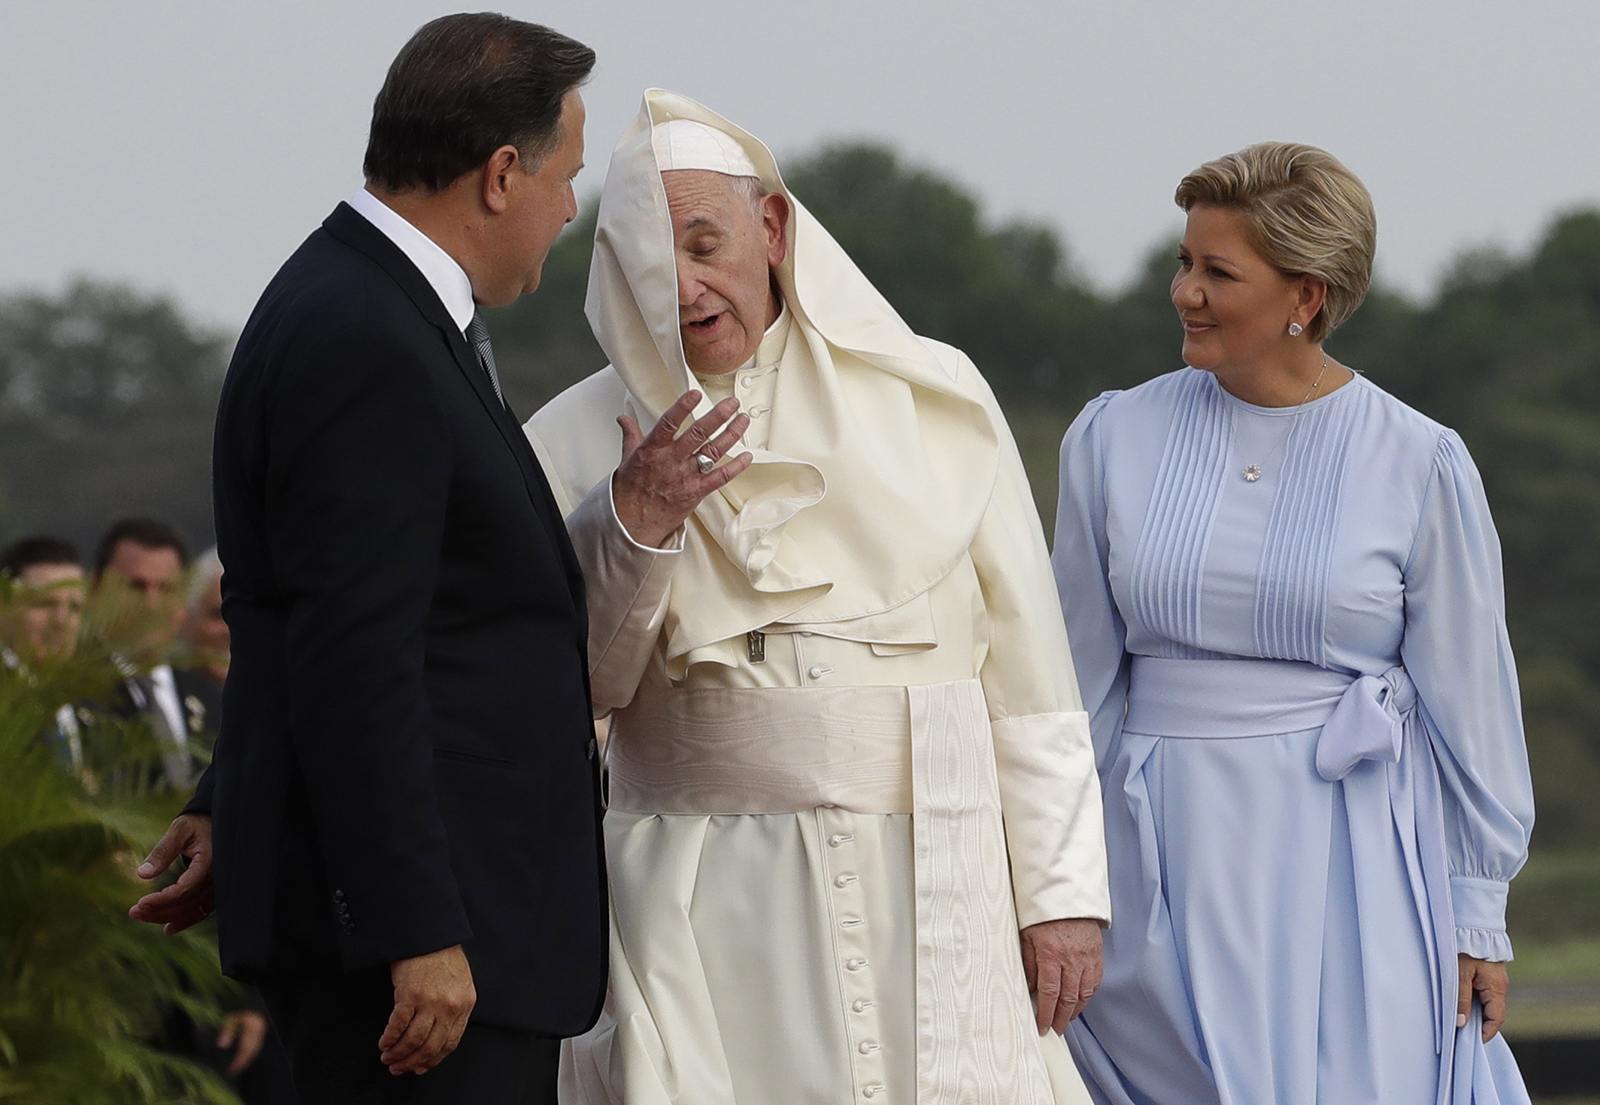 The wind blows Pope Francis' mantle as he speaks with Panamanian President Juan Carlos Varela and first lady Lorena Castillo de Varela after landing at Tocumen international airport in Panama City, Wednesday, Jan. 23, 2019. (AP Photo/Alessandra Tarantino)